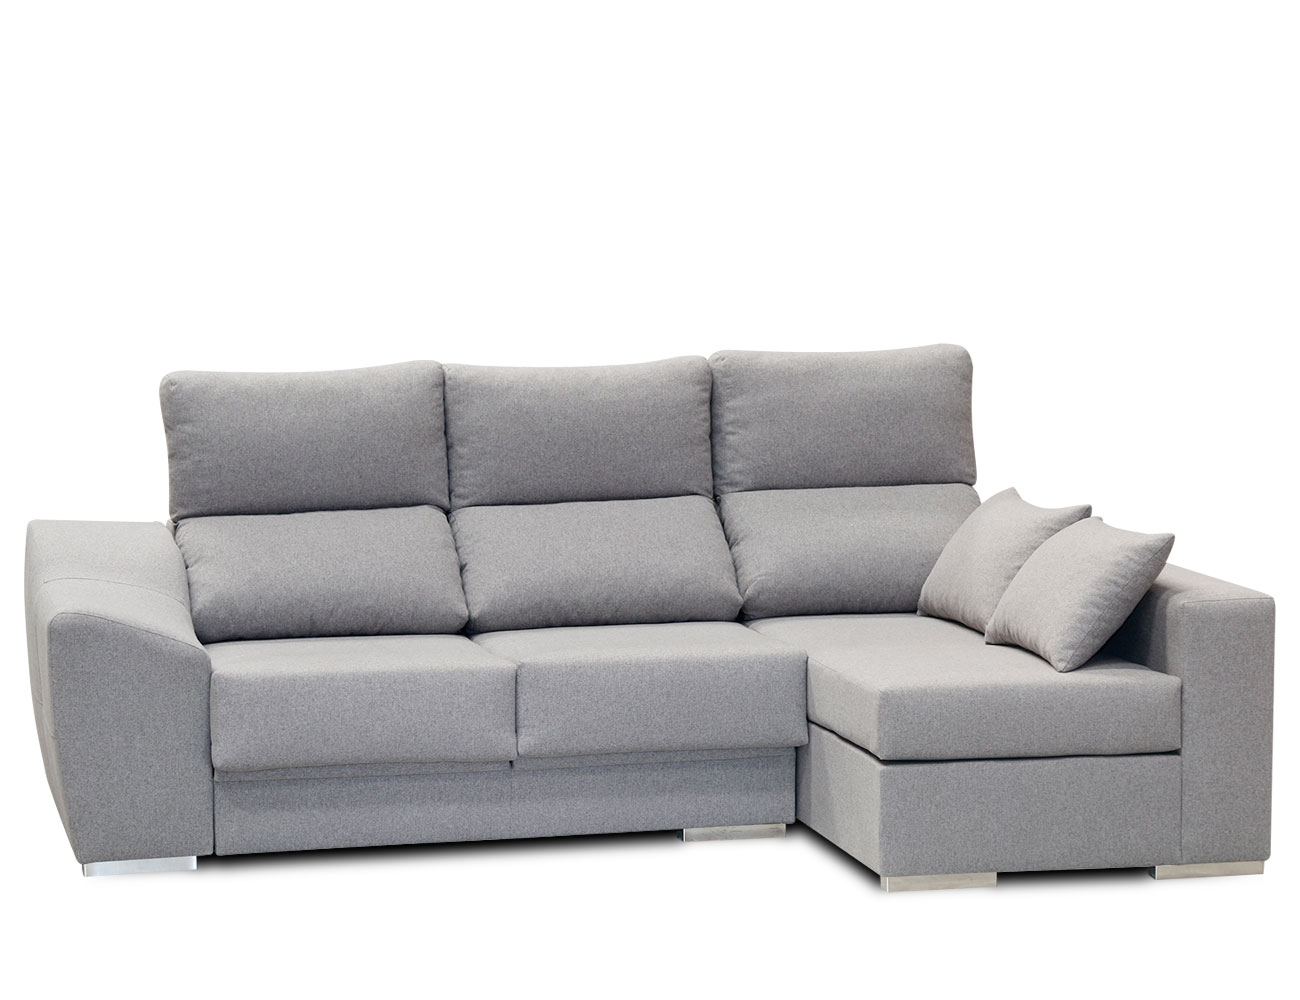 Sofa chaiselongue moderno gris 6